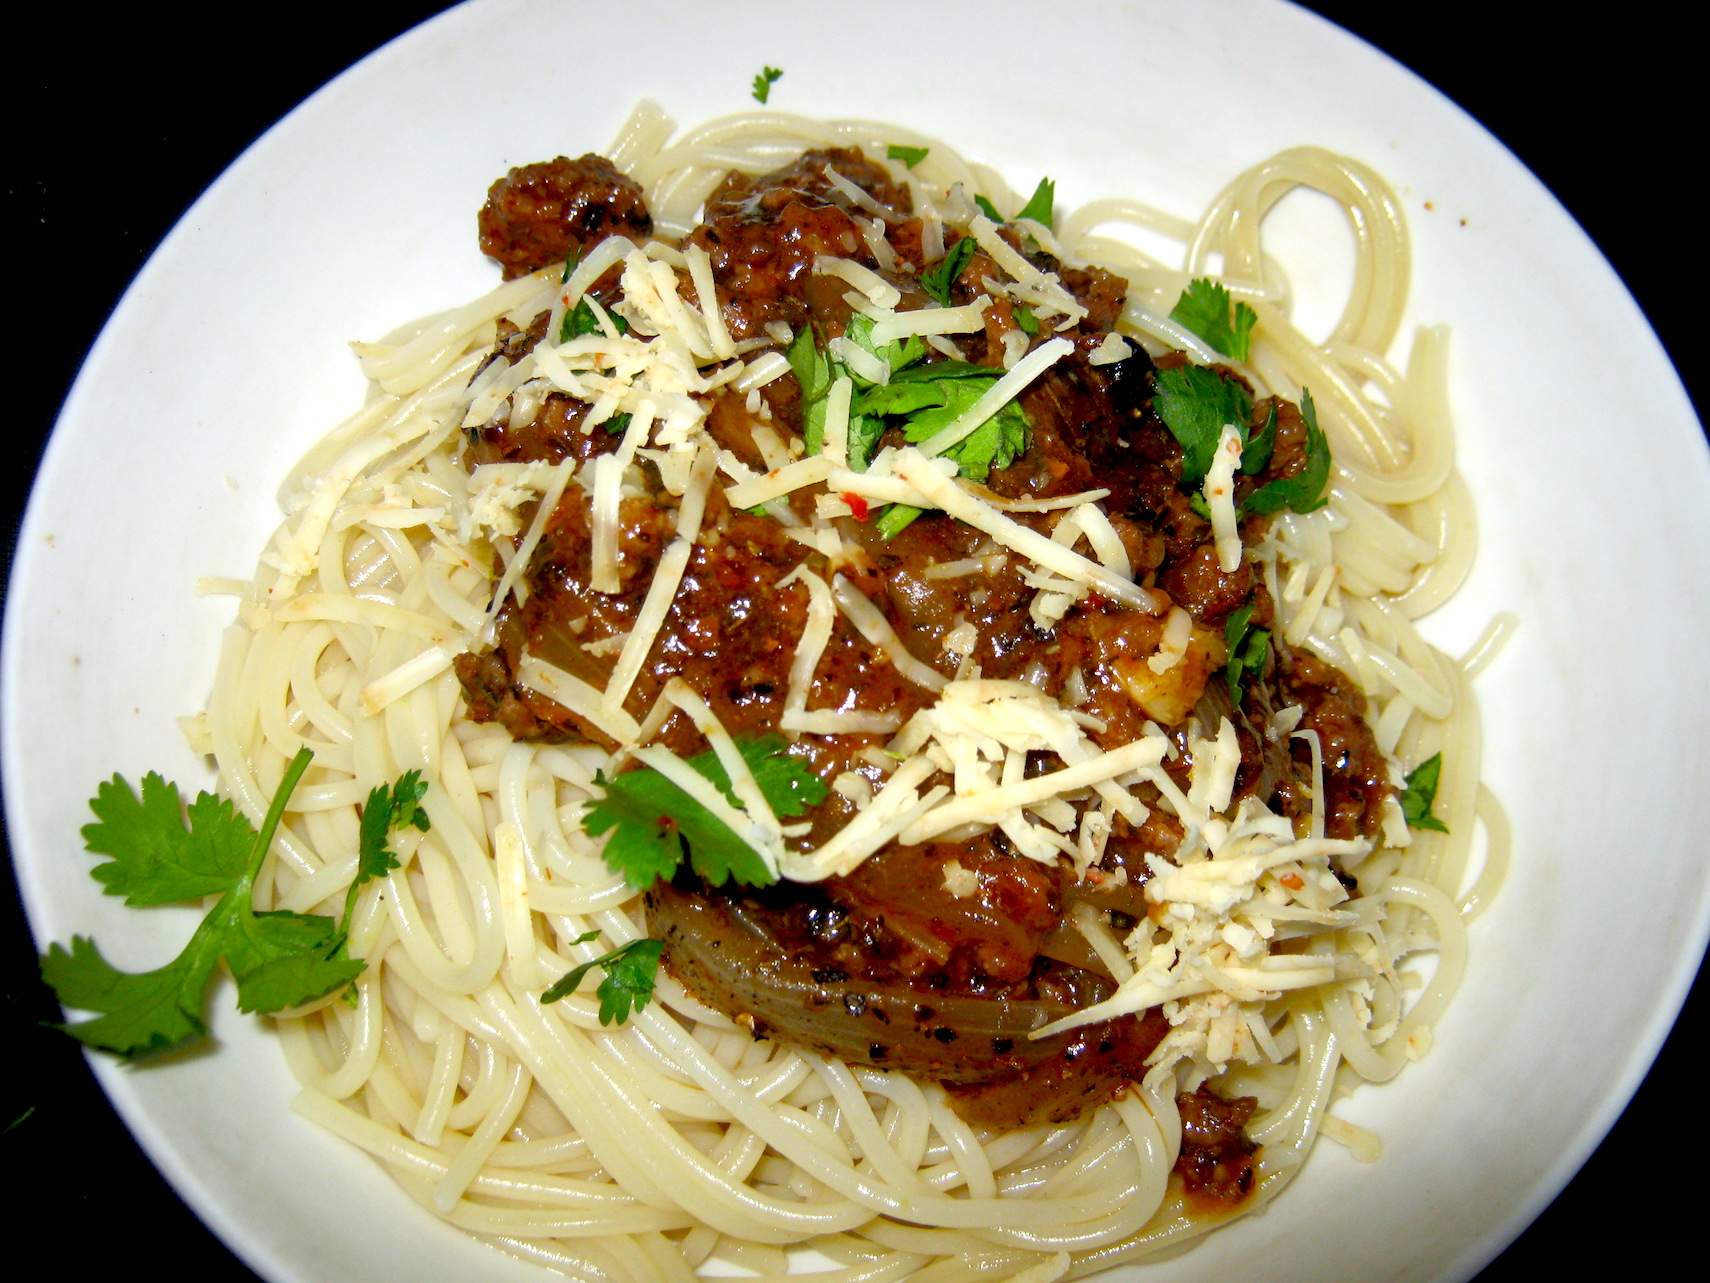 Spaghetti Bolognese with Carolina Reaper chili